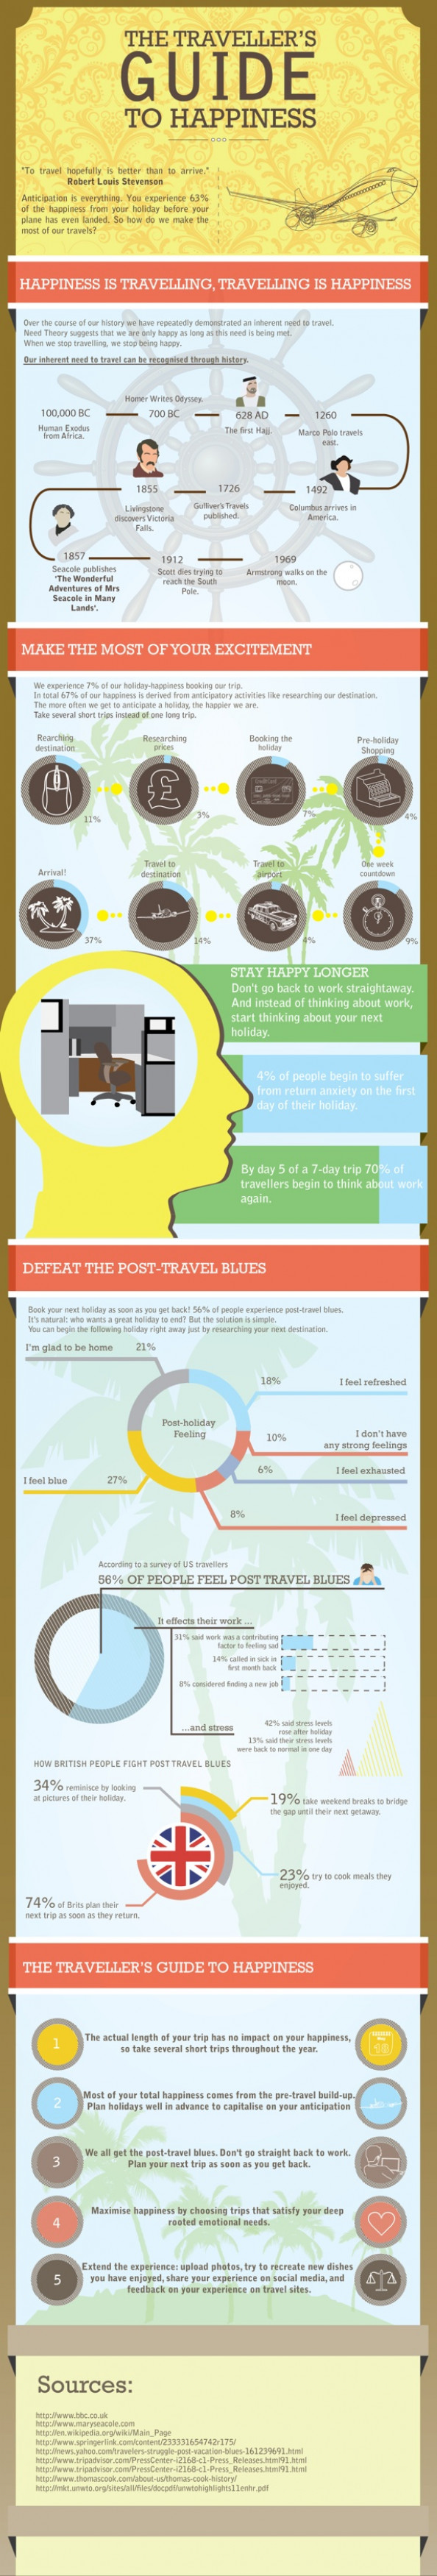 The Traveller's Guide to Happiness Infographic